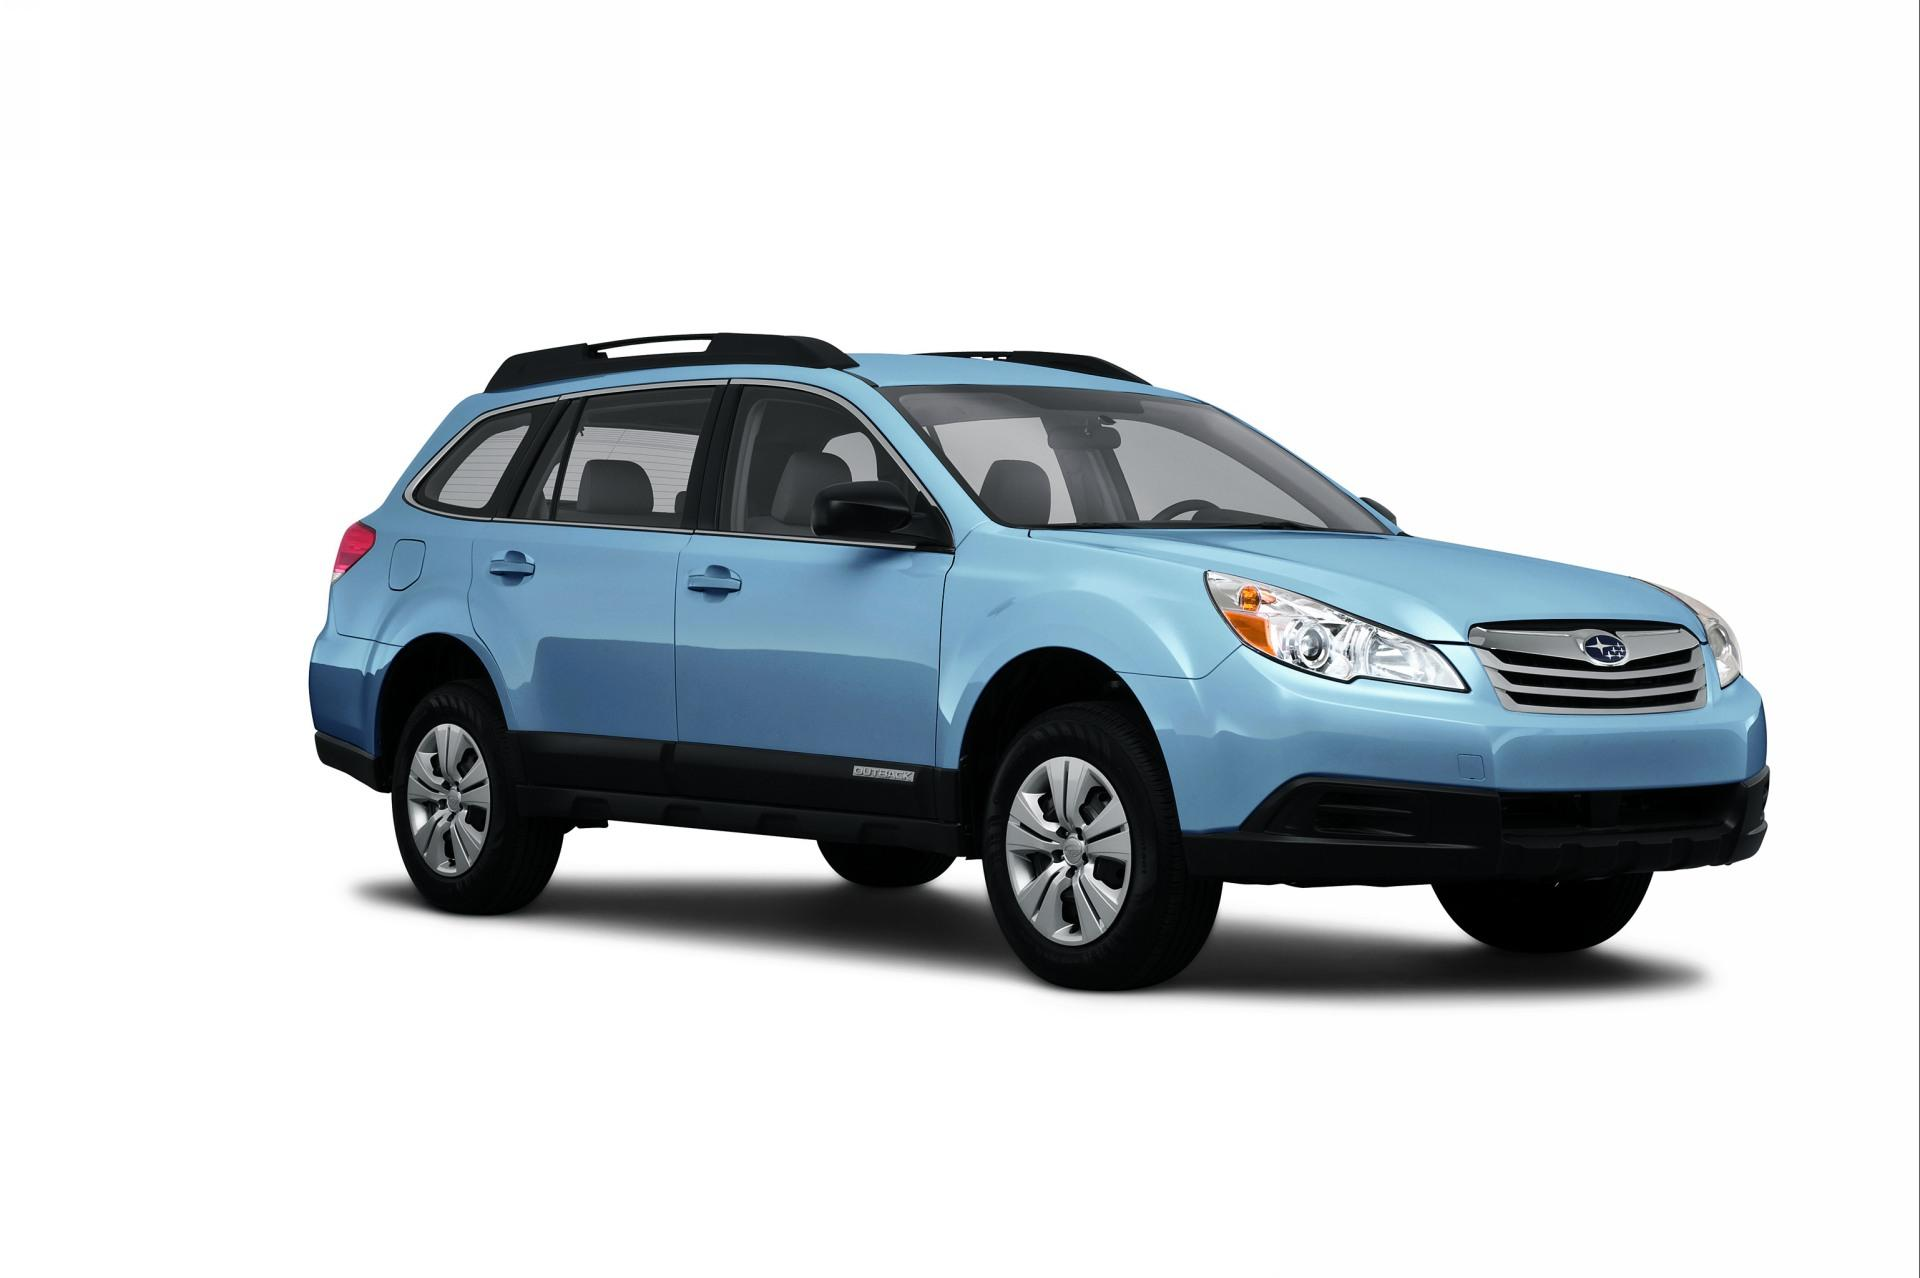 2011 Subaru Outback News and Information | conceptcarz.com